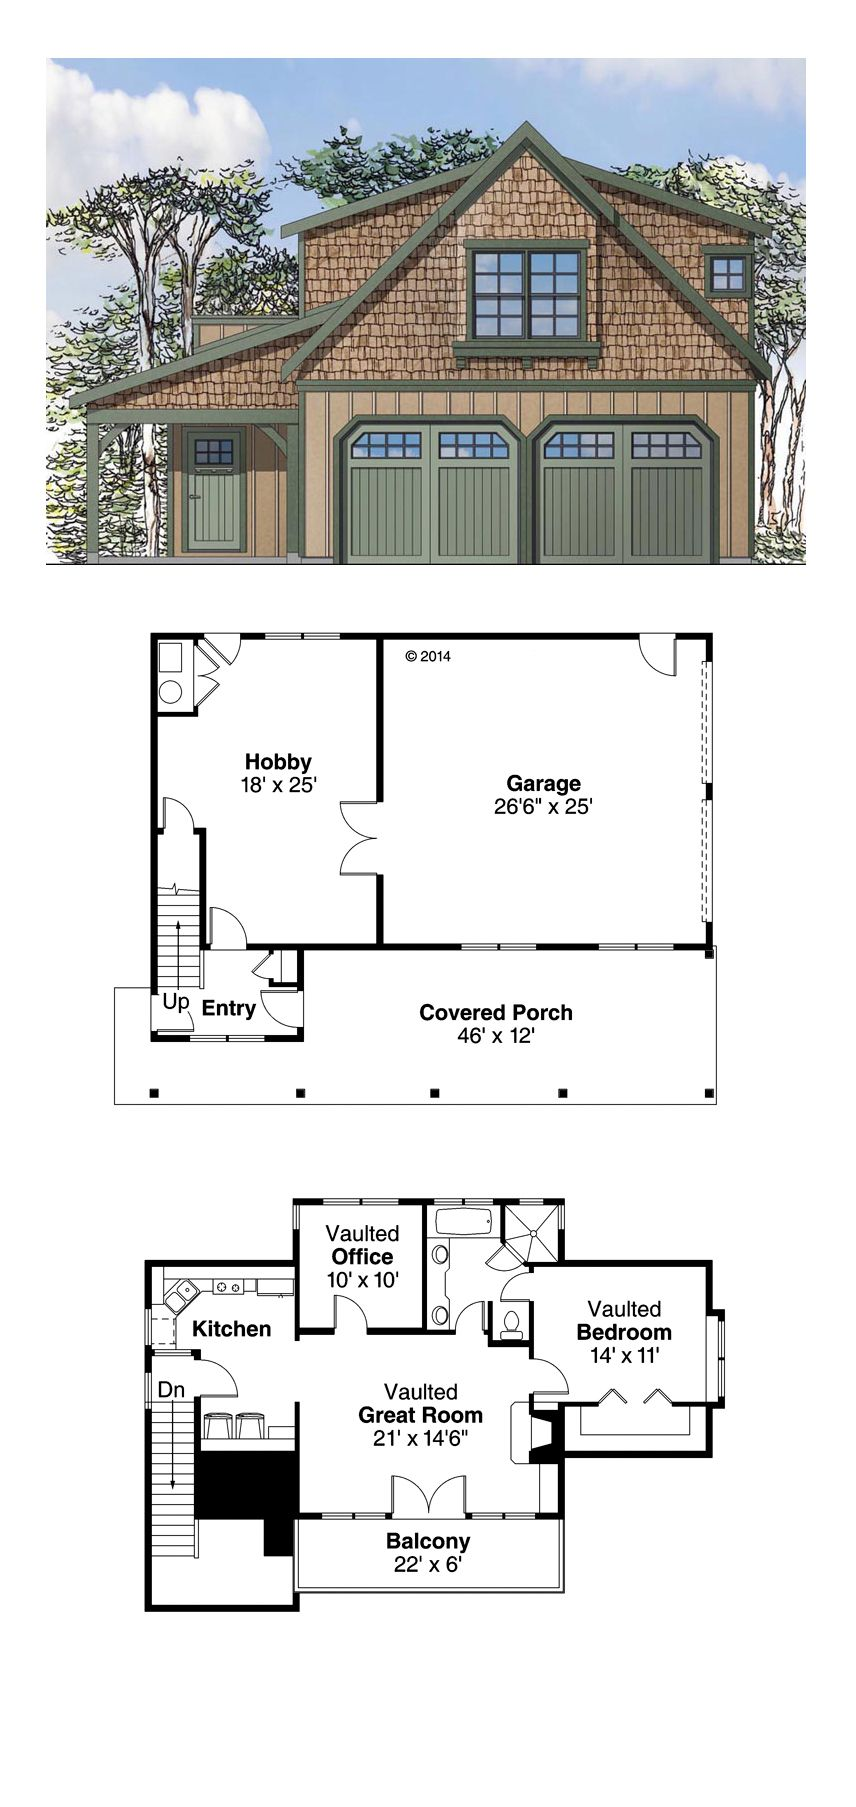 Garage Apartment Plans With Rv Storage Craftsman Style Garage Plan With 946 Sq Ft 1 Bed 1 Bath Tiny